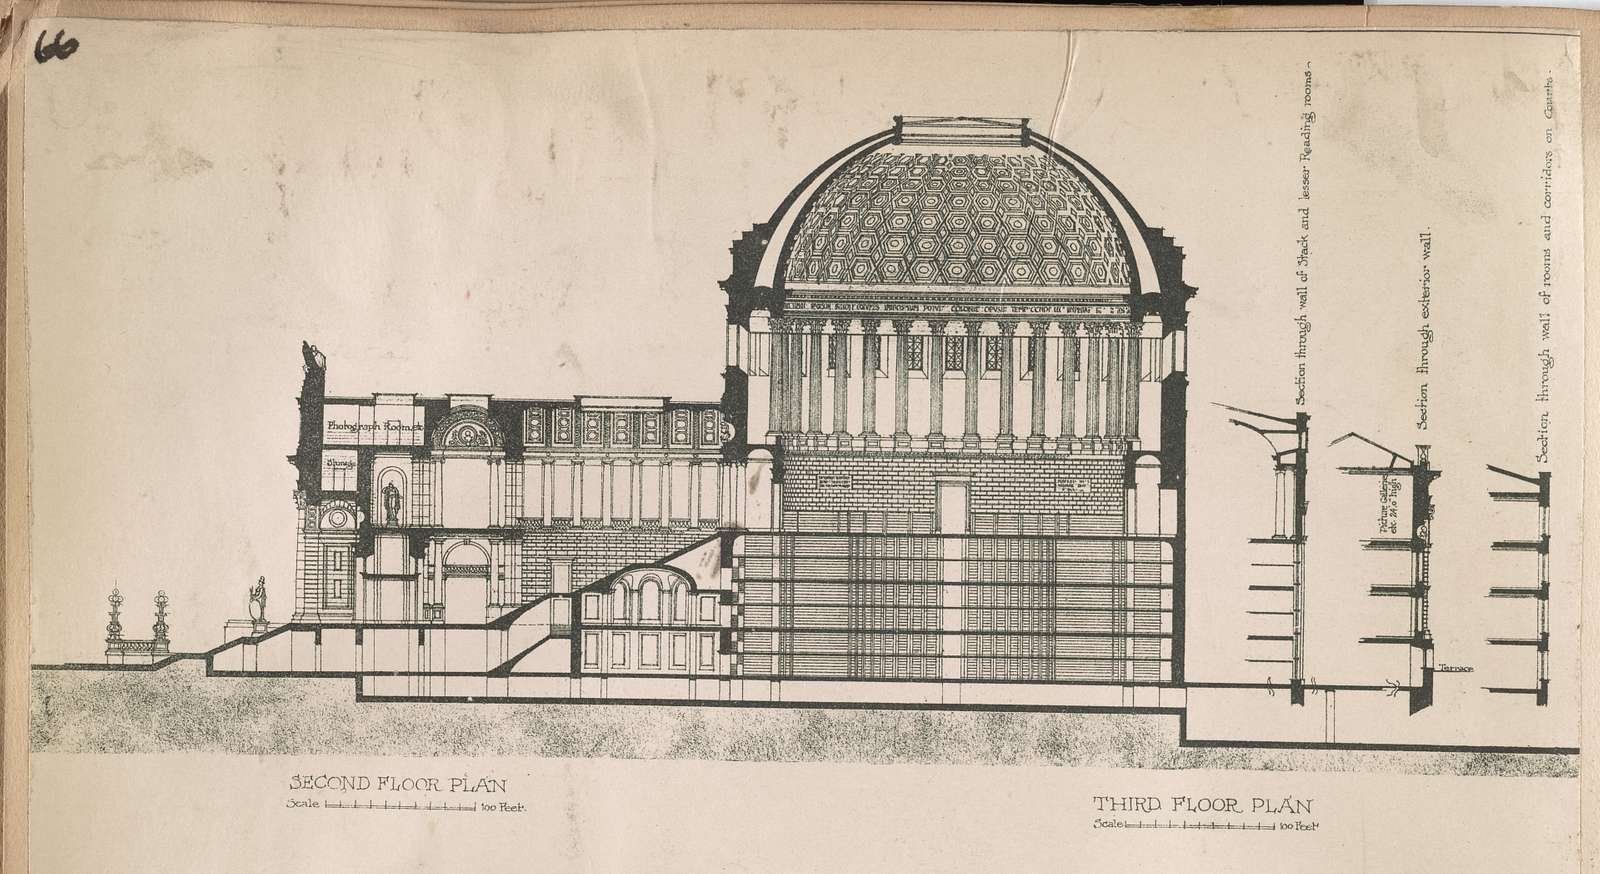 Competitive design for the New York Public Library / Brite & Bacon, architects.